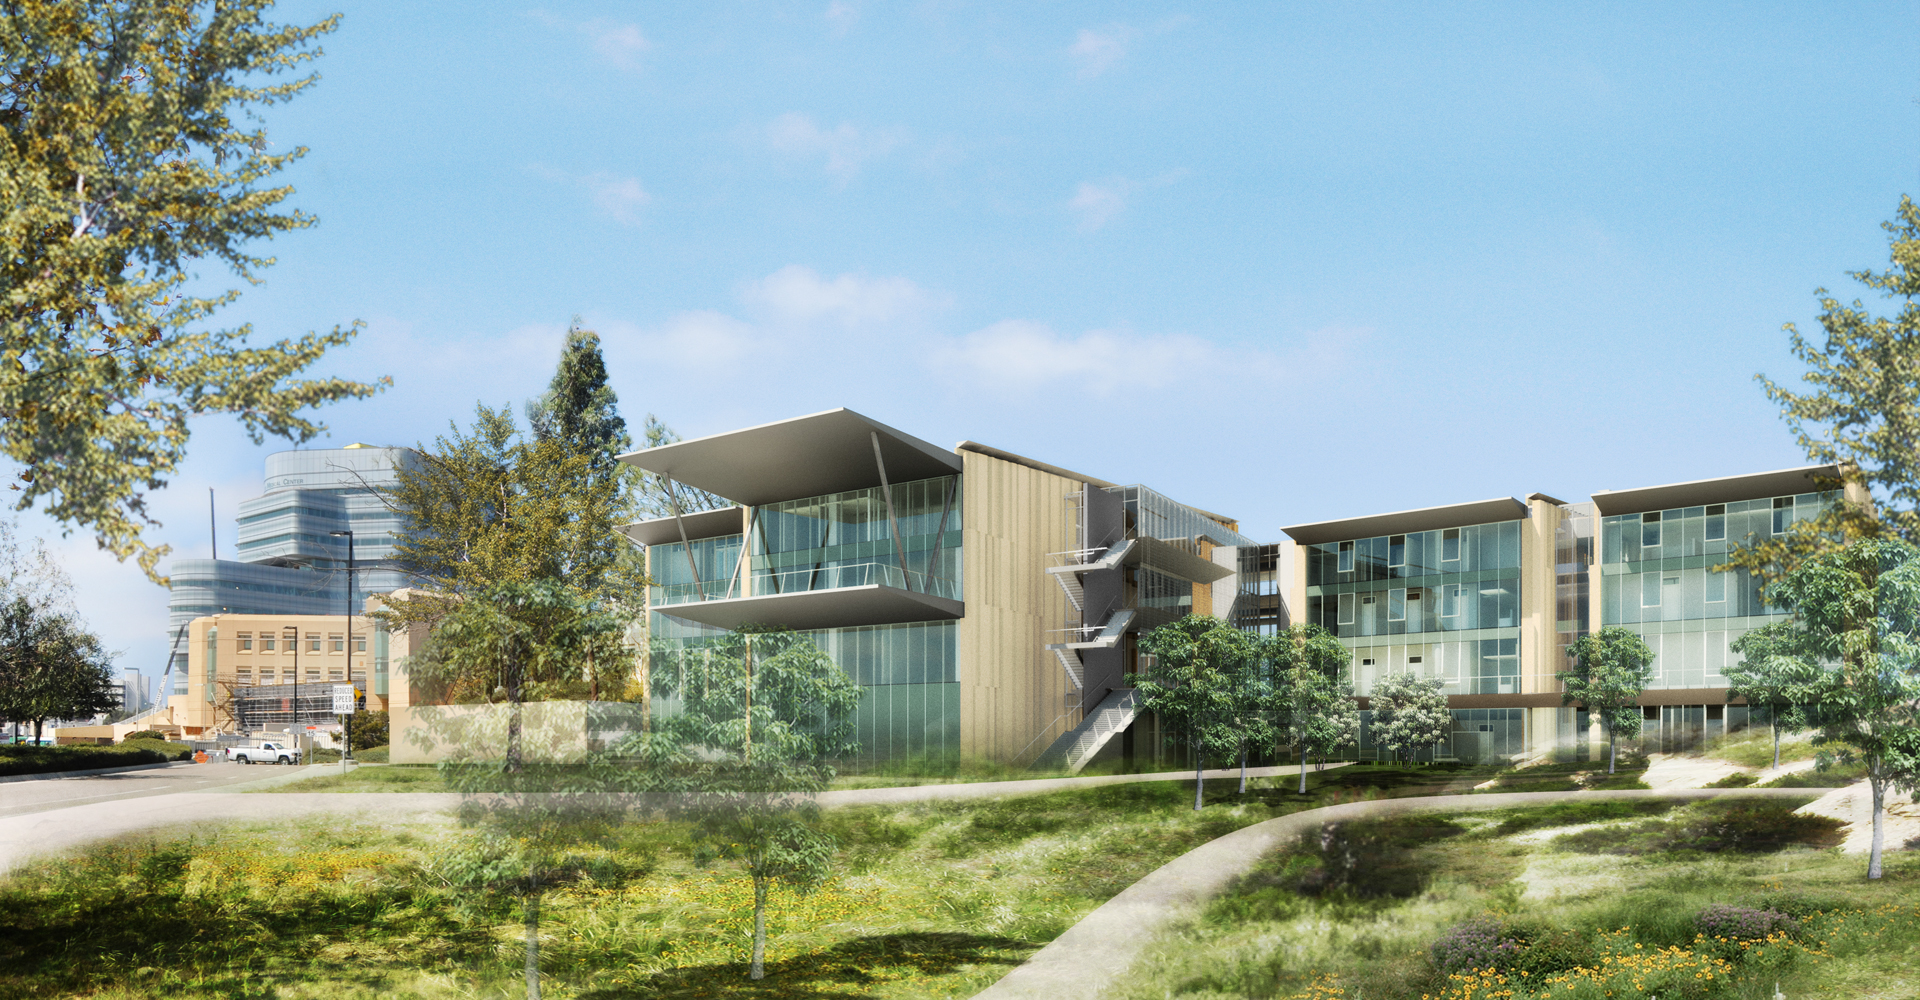 Rendering of the Outpatient Pavilion for UC San Diego Health Services.